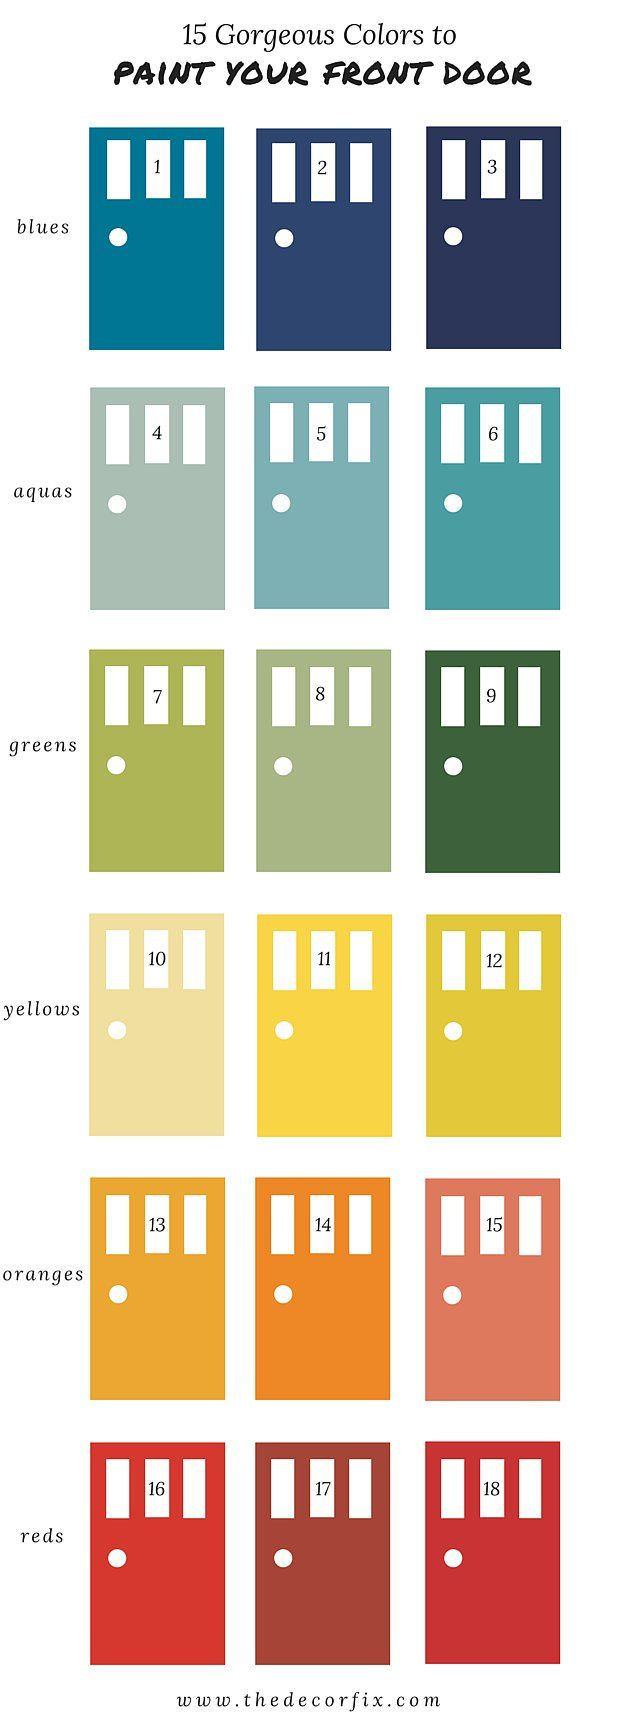 The Best Paint Colors to Use on Your Front Door | POPSUGAR Home -5= Blue Spa (BM)